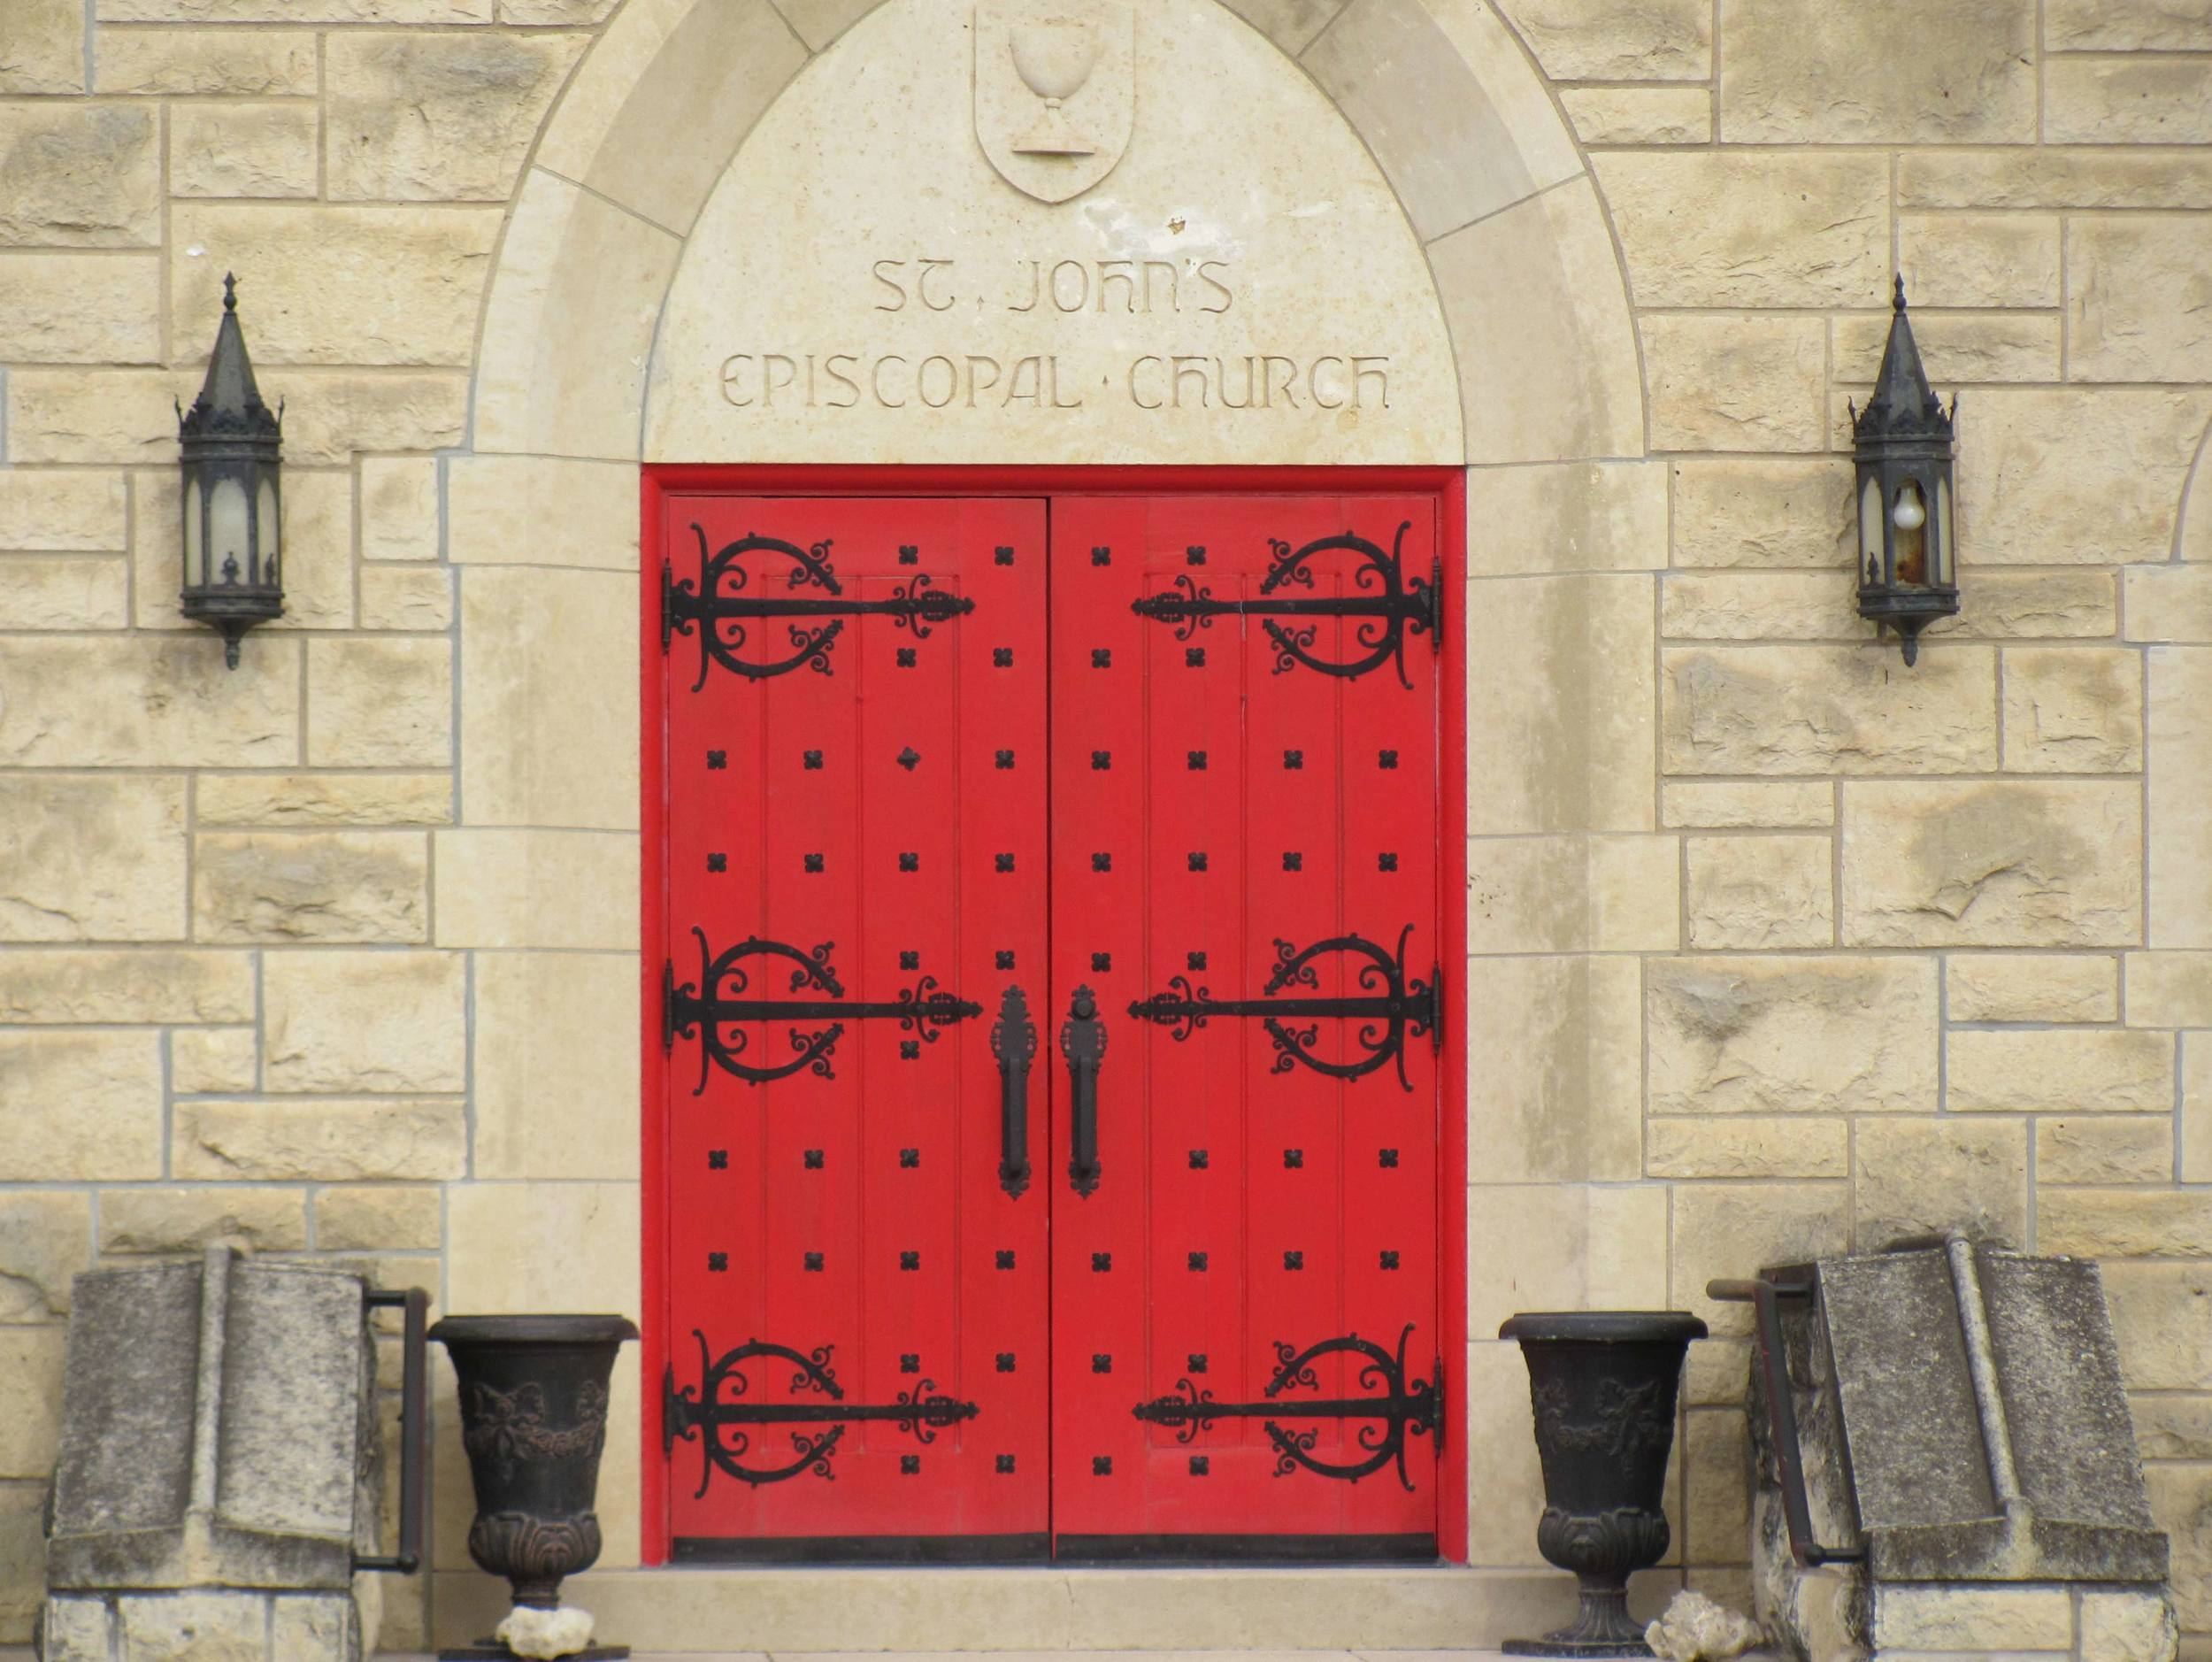 Emblematic of many Episcopal churches, the red doors of St. John's are open to all.